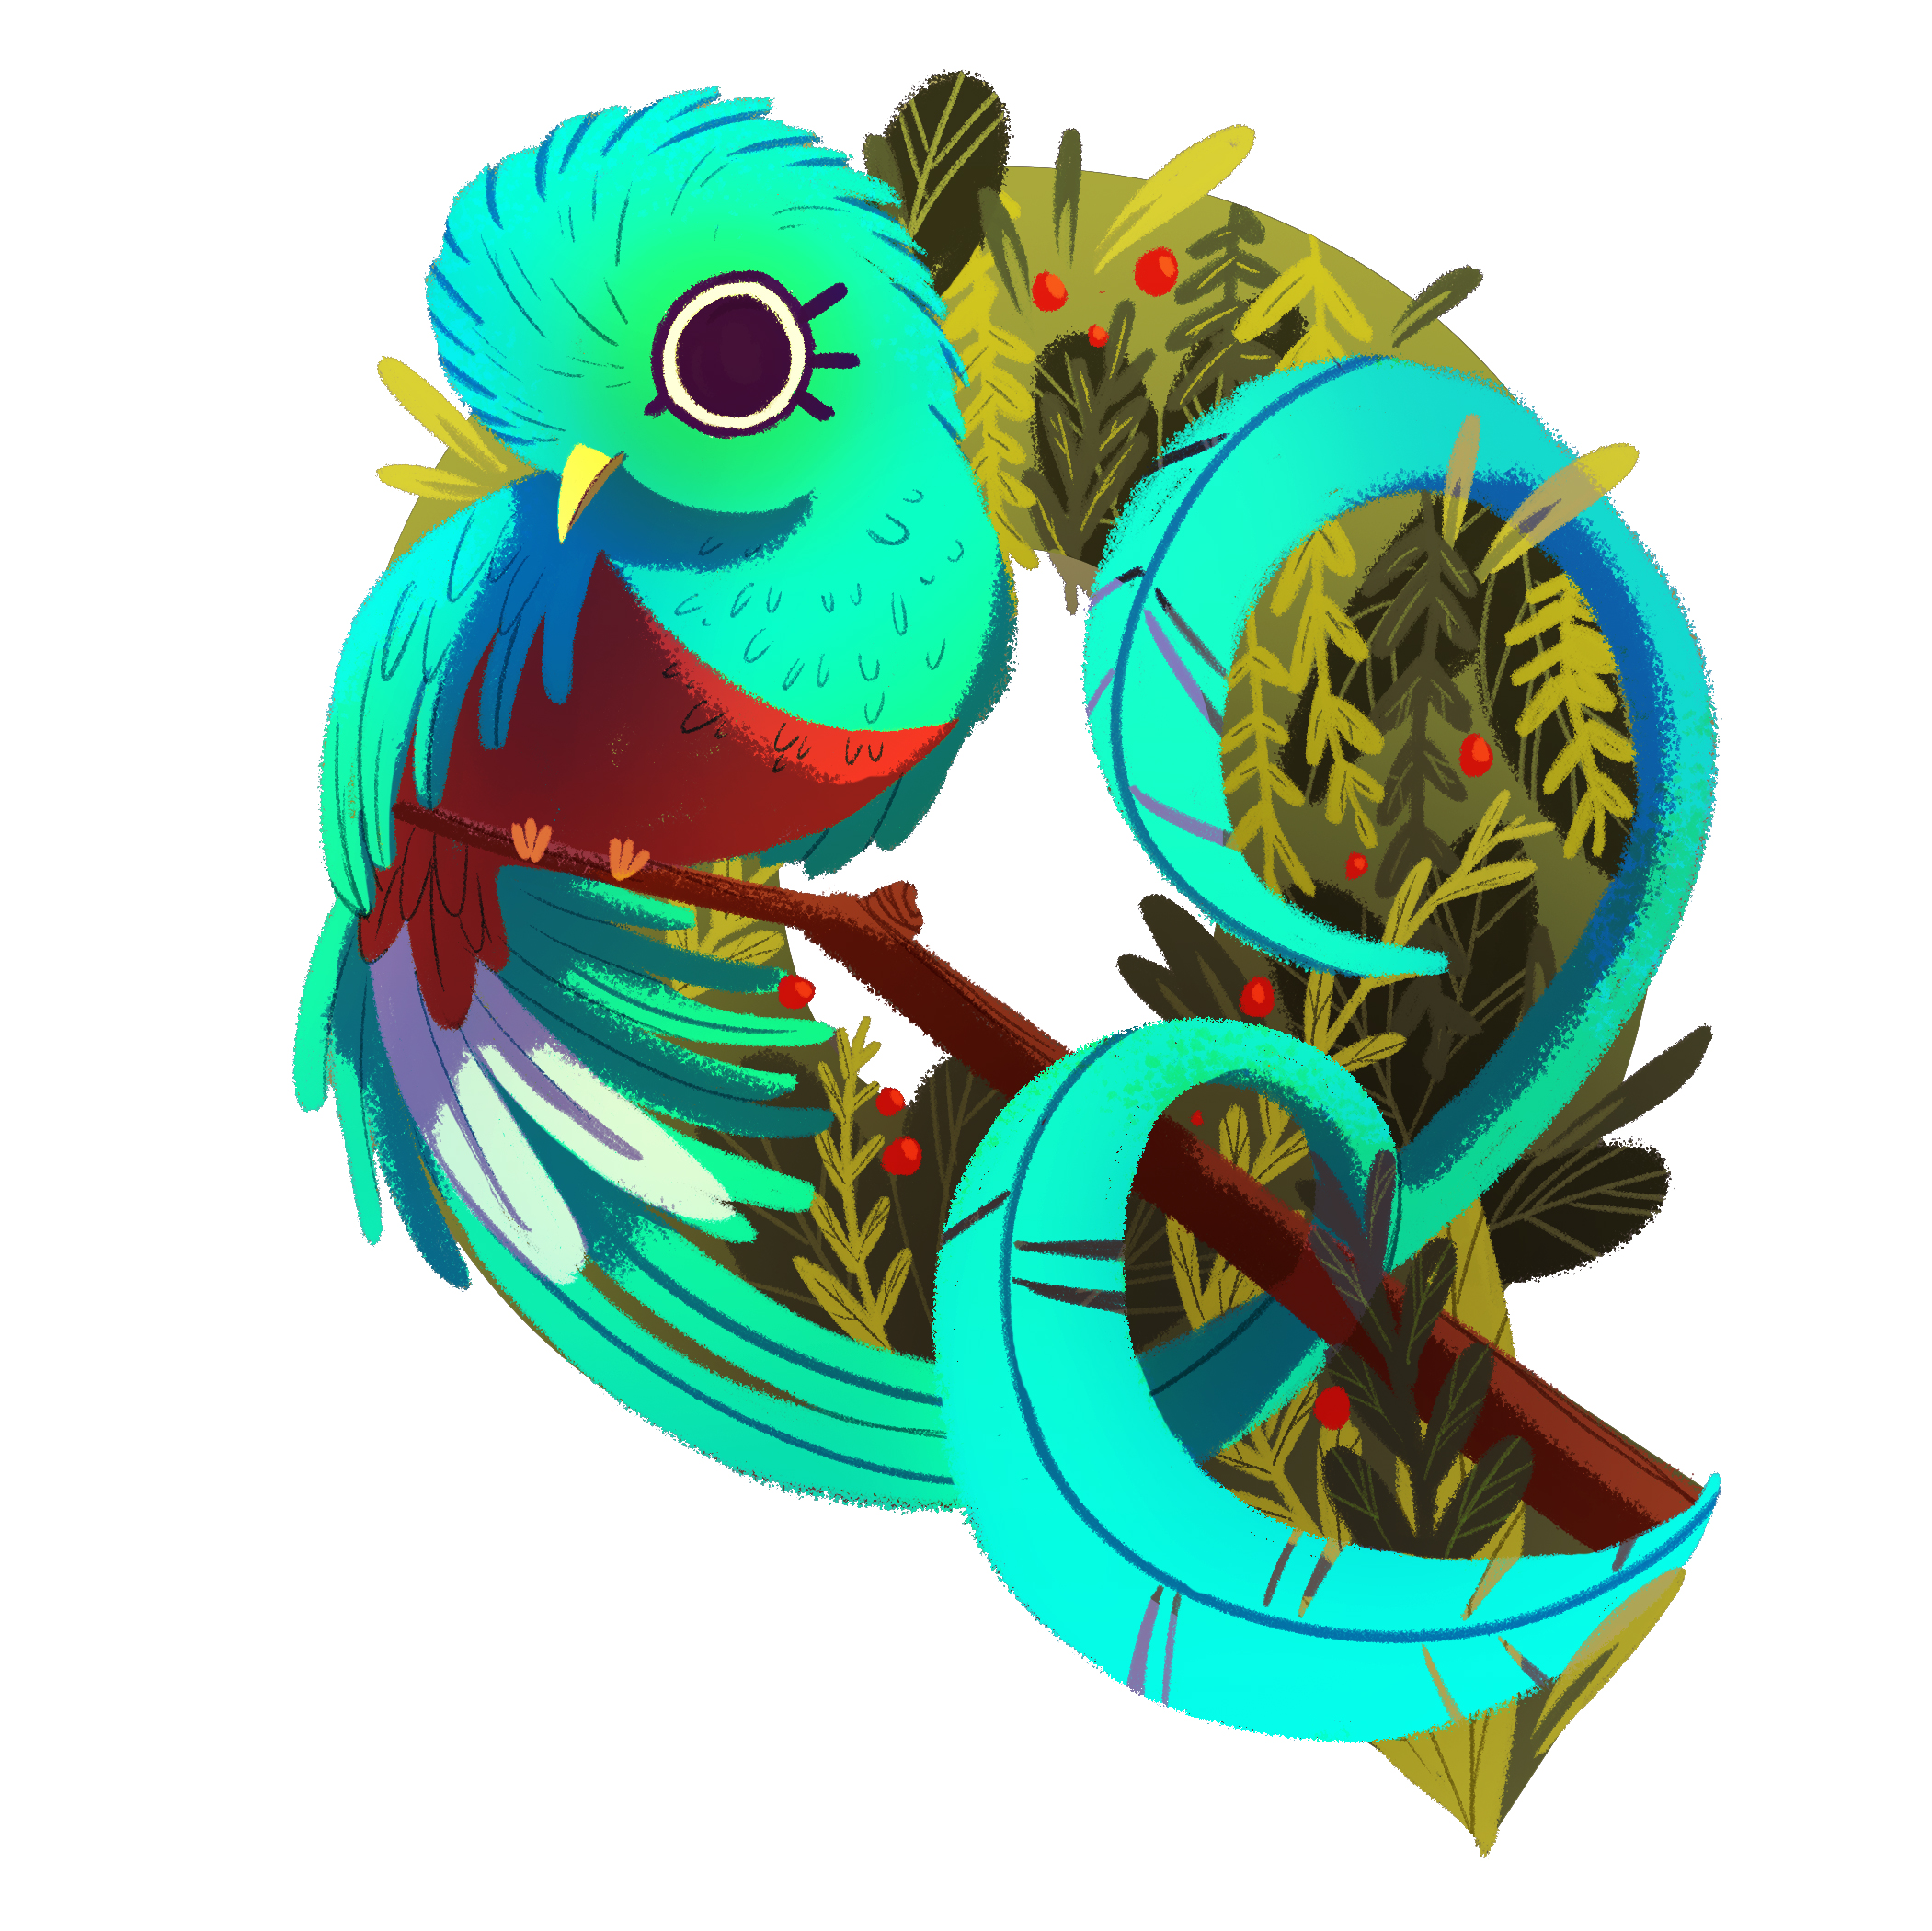 Q is for Quetzal